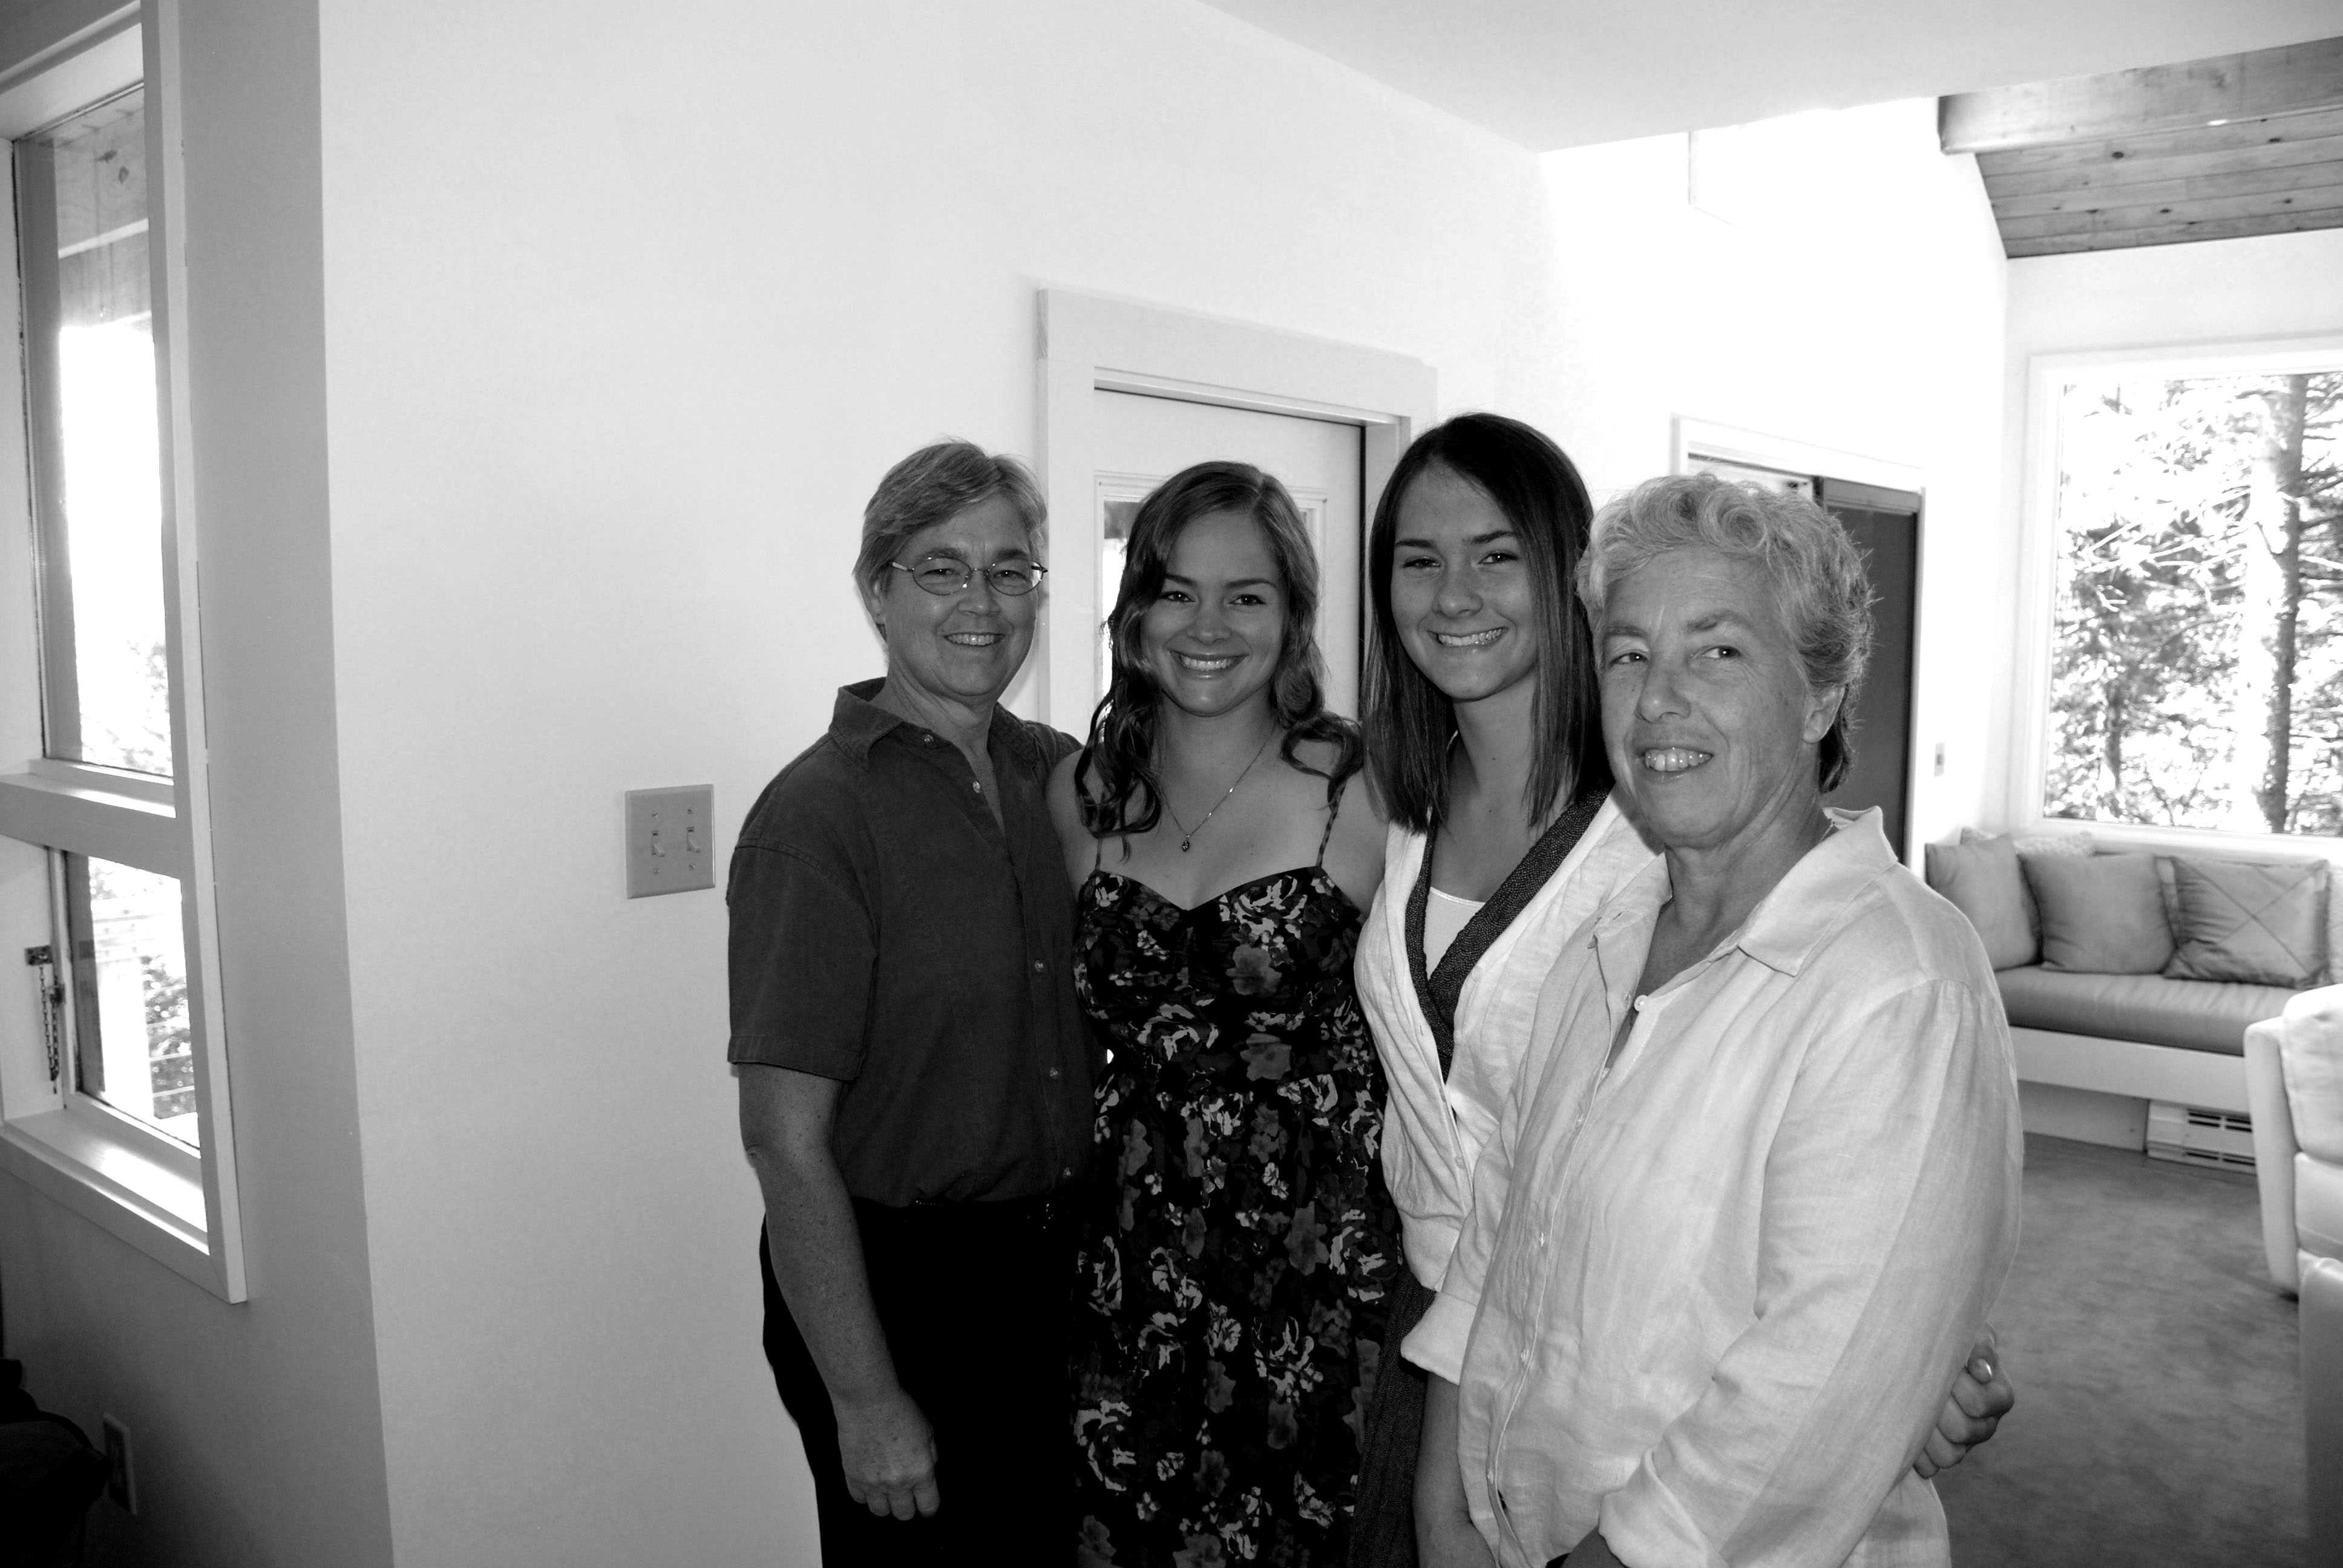 The Hall-Almquist family. From left, Shelle Almquist, Zoe Almquist, Zane Almquist and Lauren Hall.